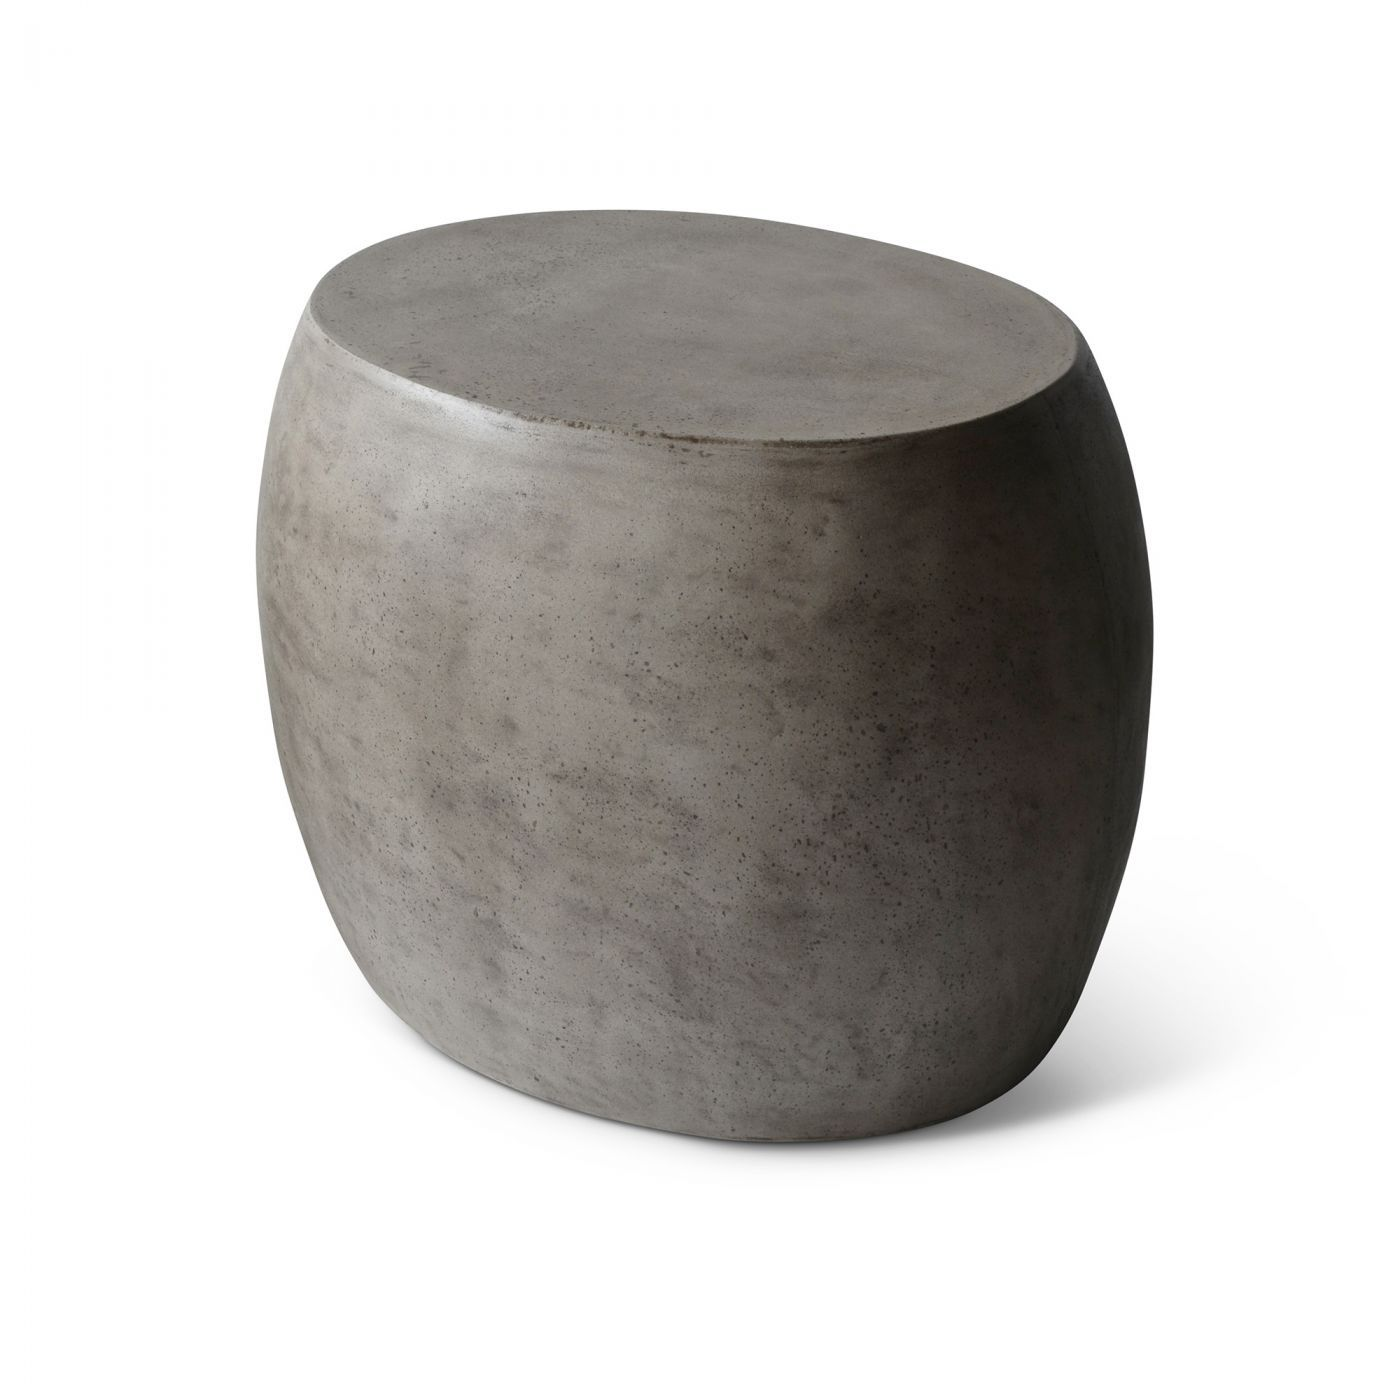 A side table made of fiber-reinforced concrete, softened with a ...